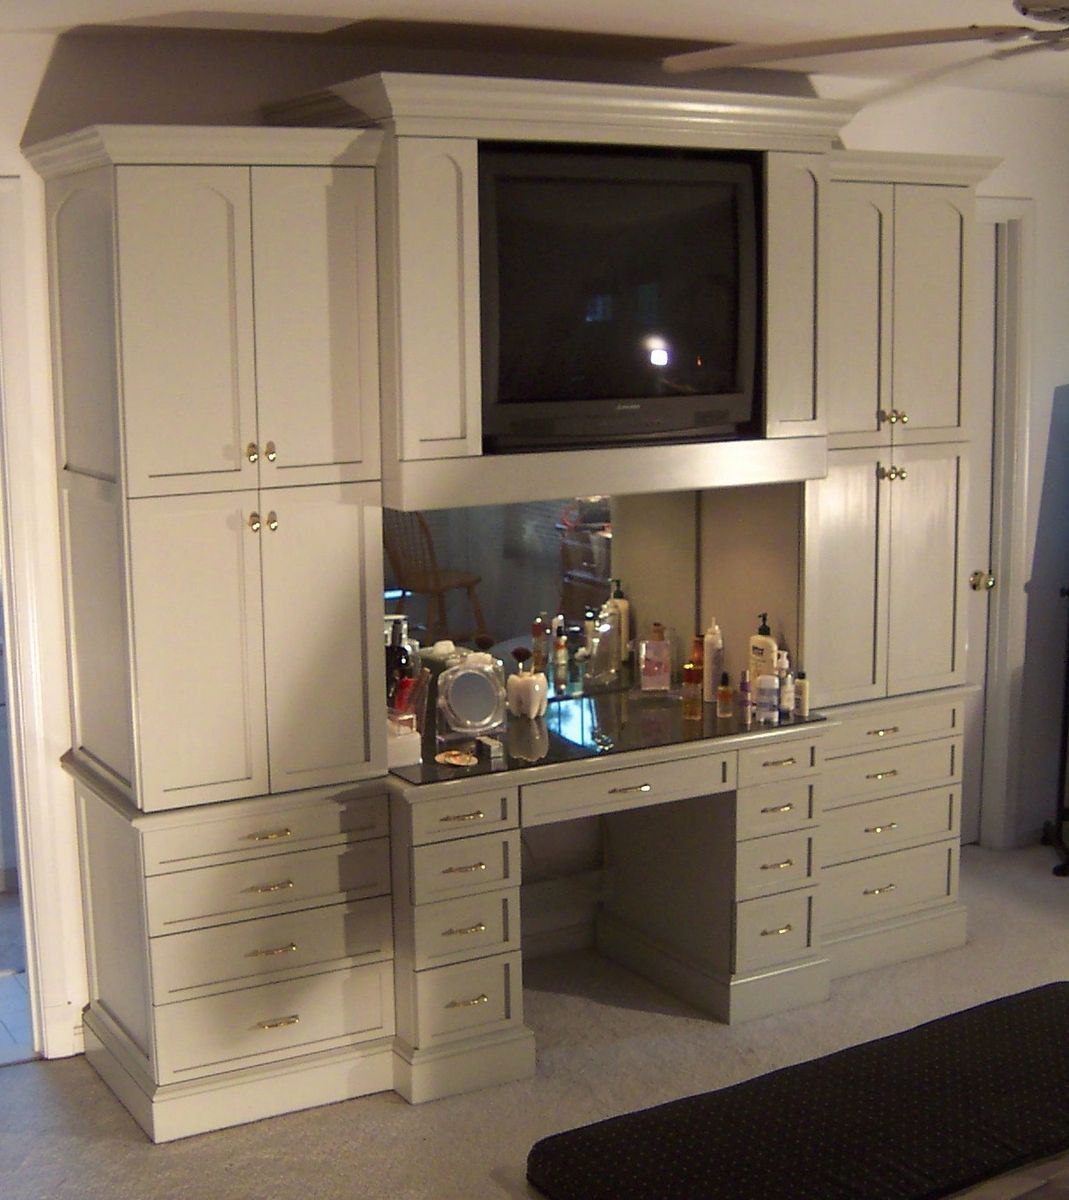 Bedroom cabinet and makeup table built in i want sans tv for Closet vanity ideas